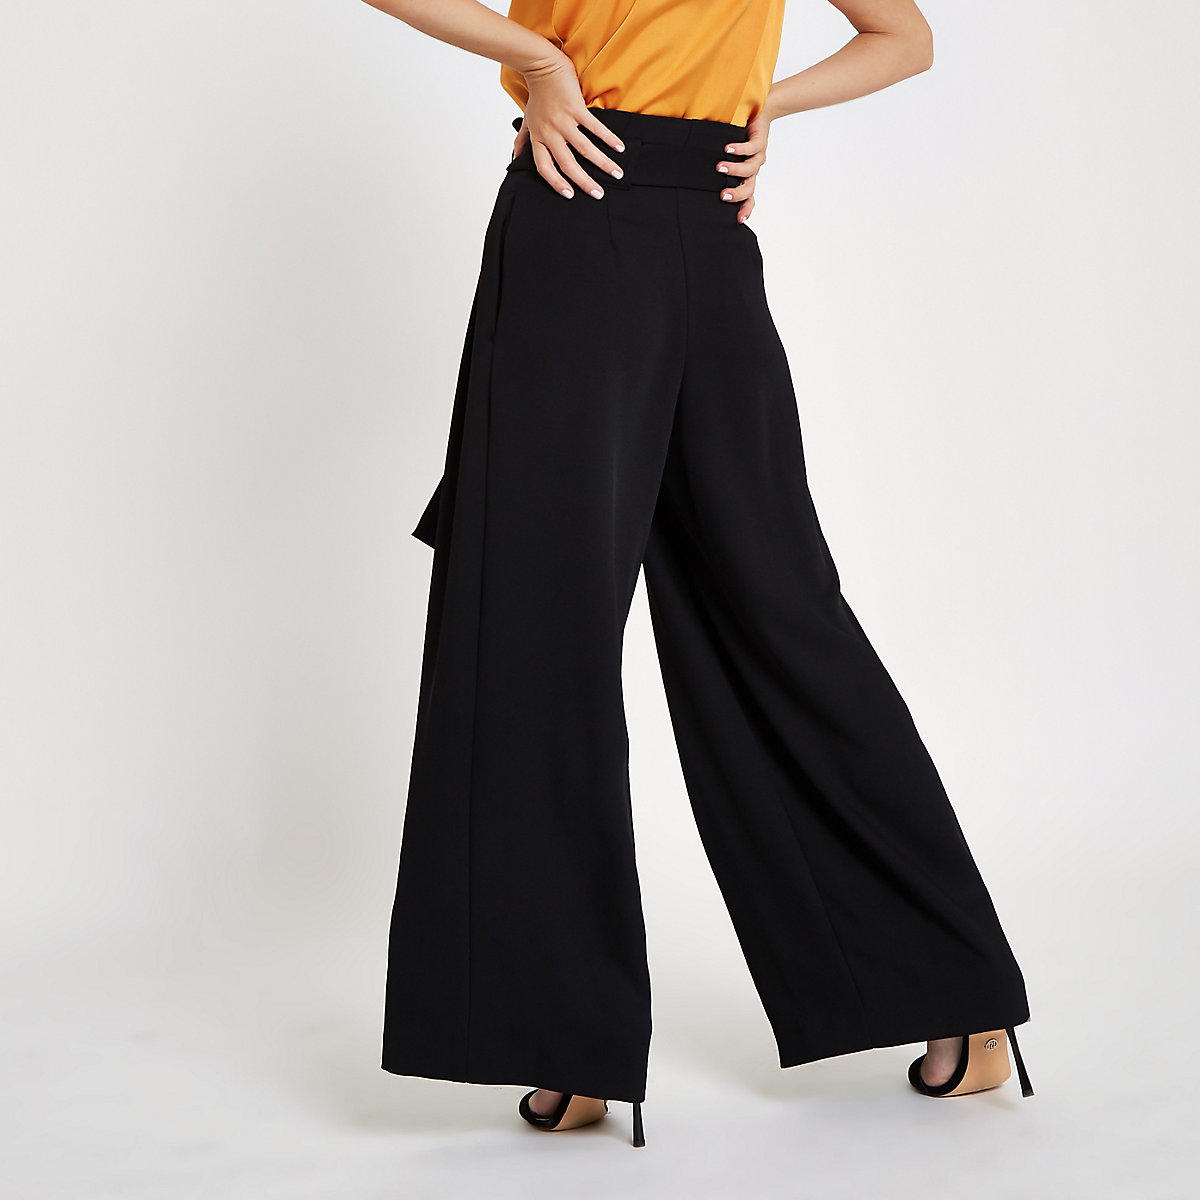 385a832add29e3 Petite black paperbag waist wide leg trousers - Wide Leg Trousers ...